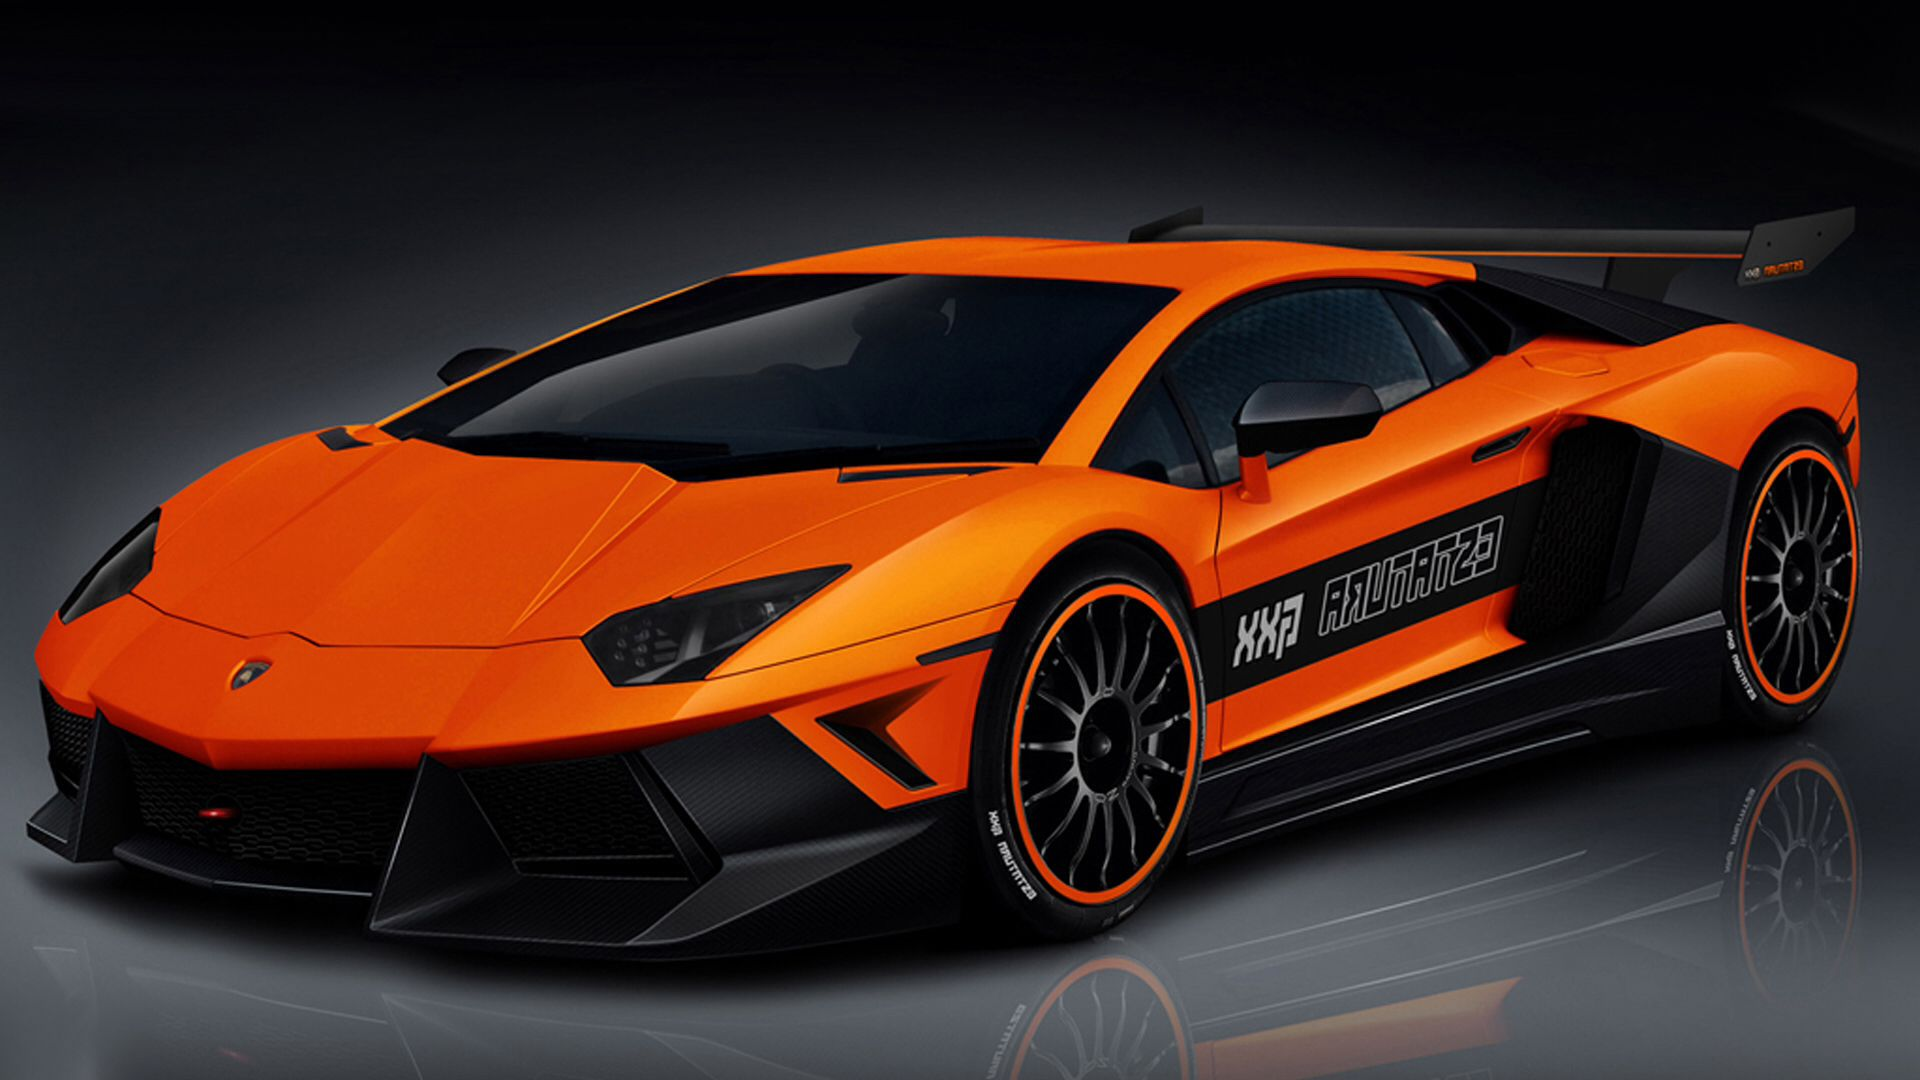 Really Cool Orange Lambo With Black Stripe